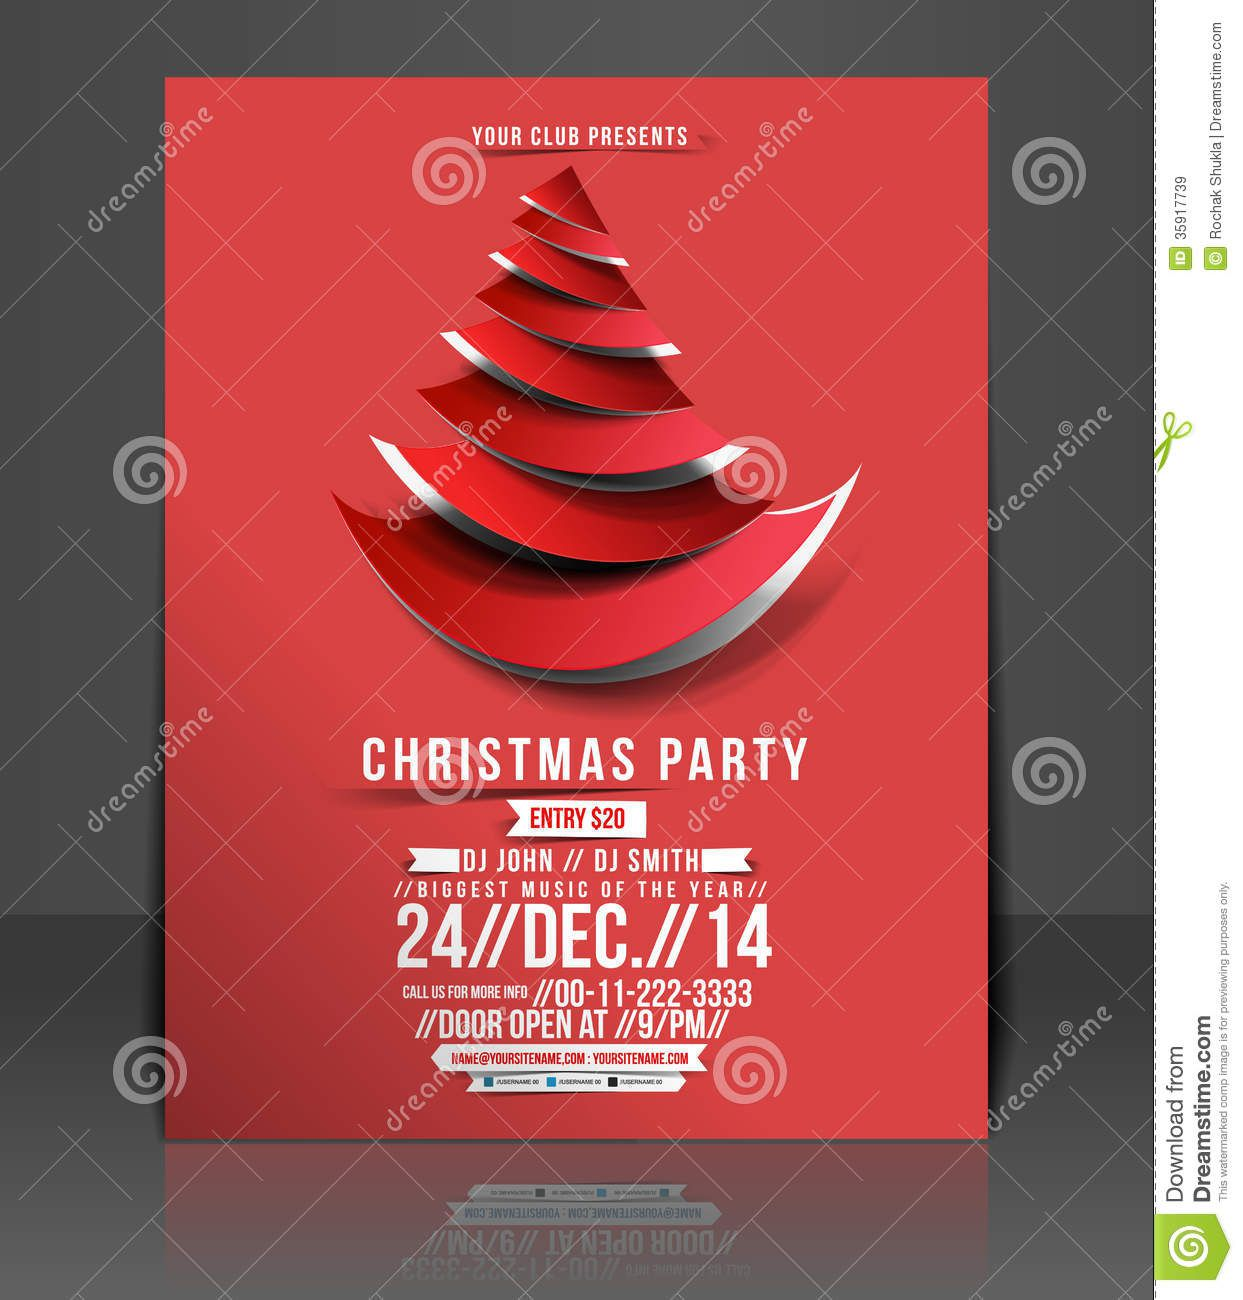 007 Staggering Free Holiday Party Flyer Template Word Inspiration Full